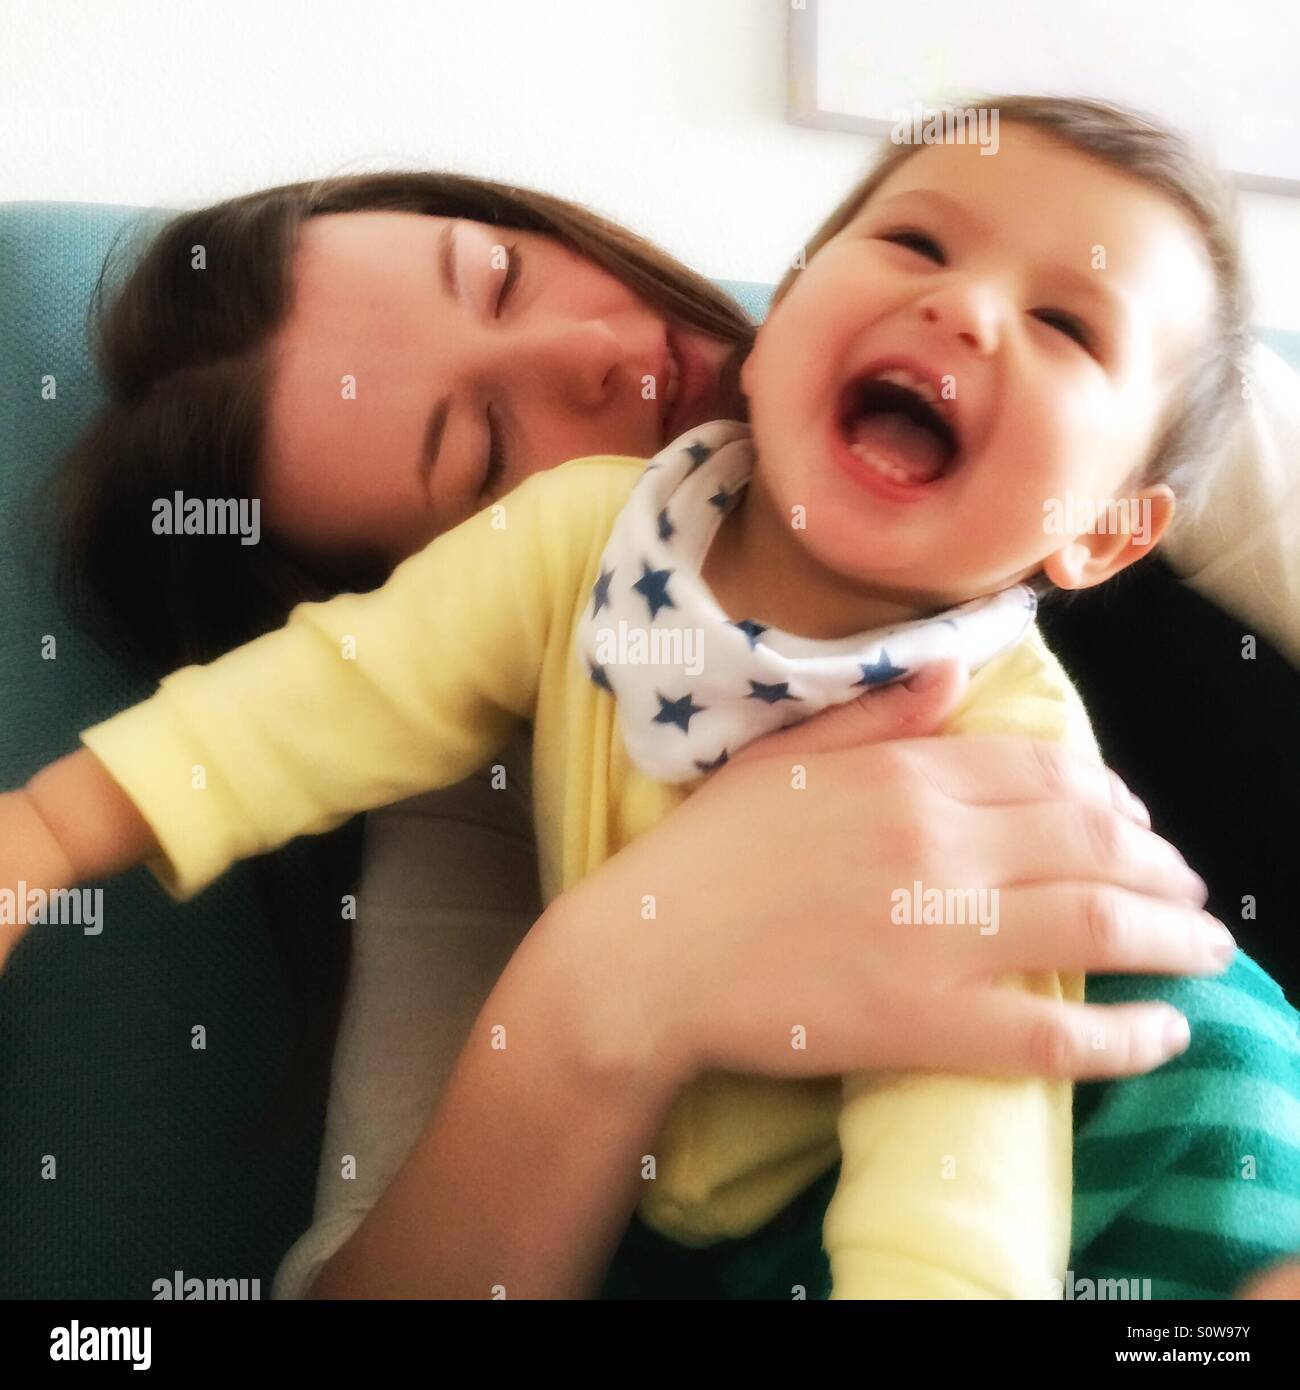 Mother playing with laughing baby - Stock Image